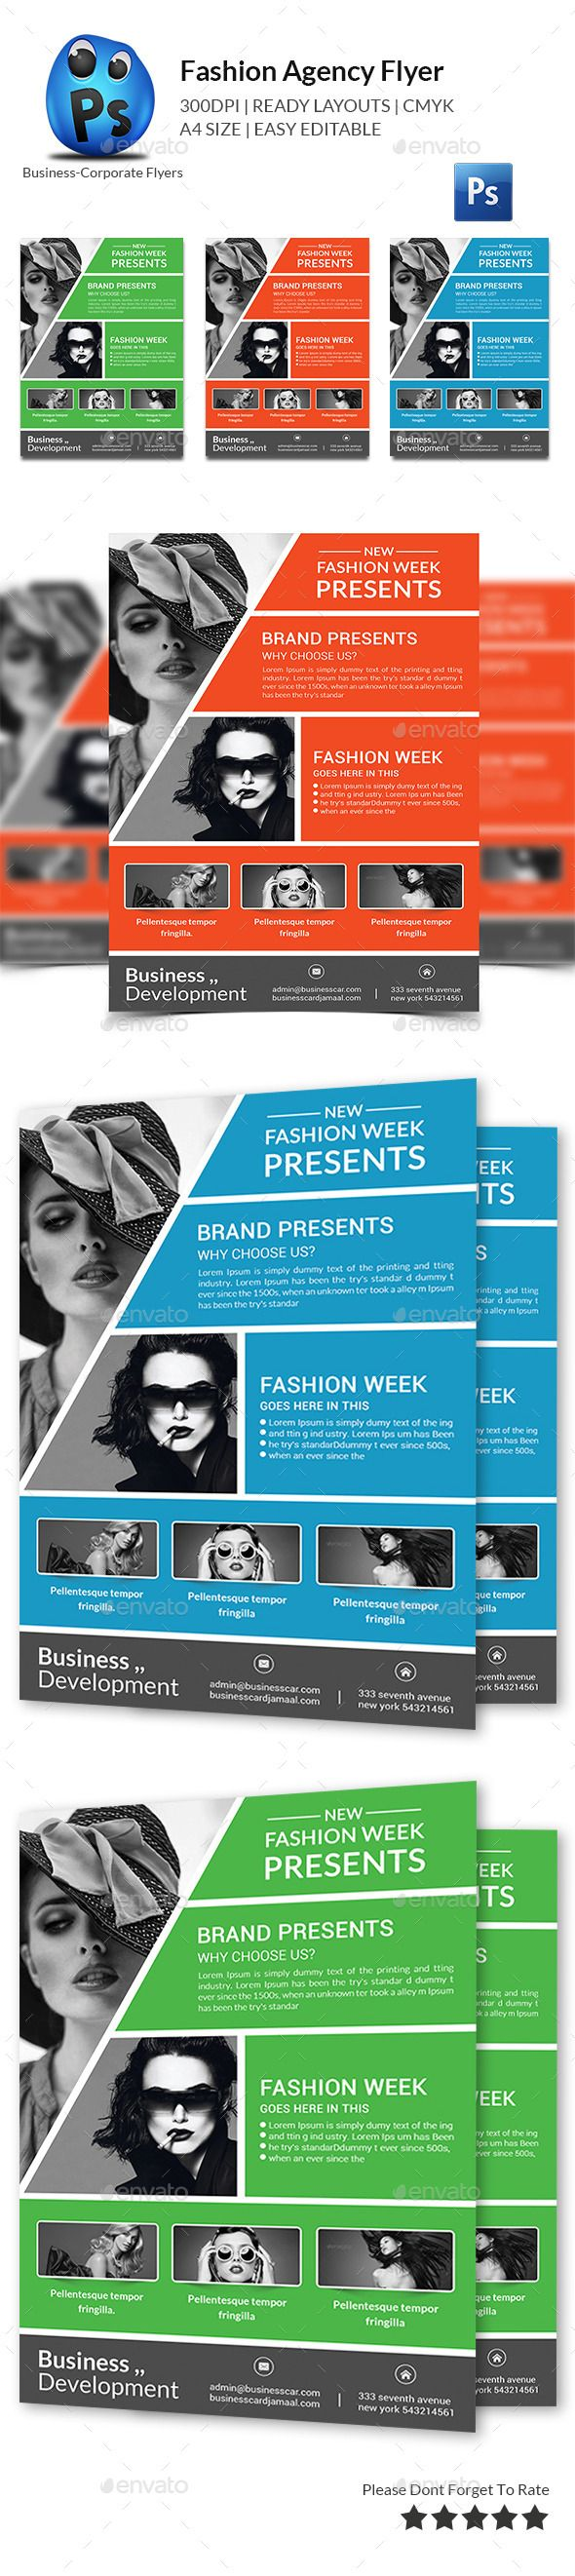 Fashion Agency Flyer Print Templates — Photoshop PSD #model hunt #artist • Available here → https://graphicriver.net/item/fashion-agency-flyer-print-templates/11974100?ref=pxcr